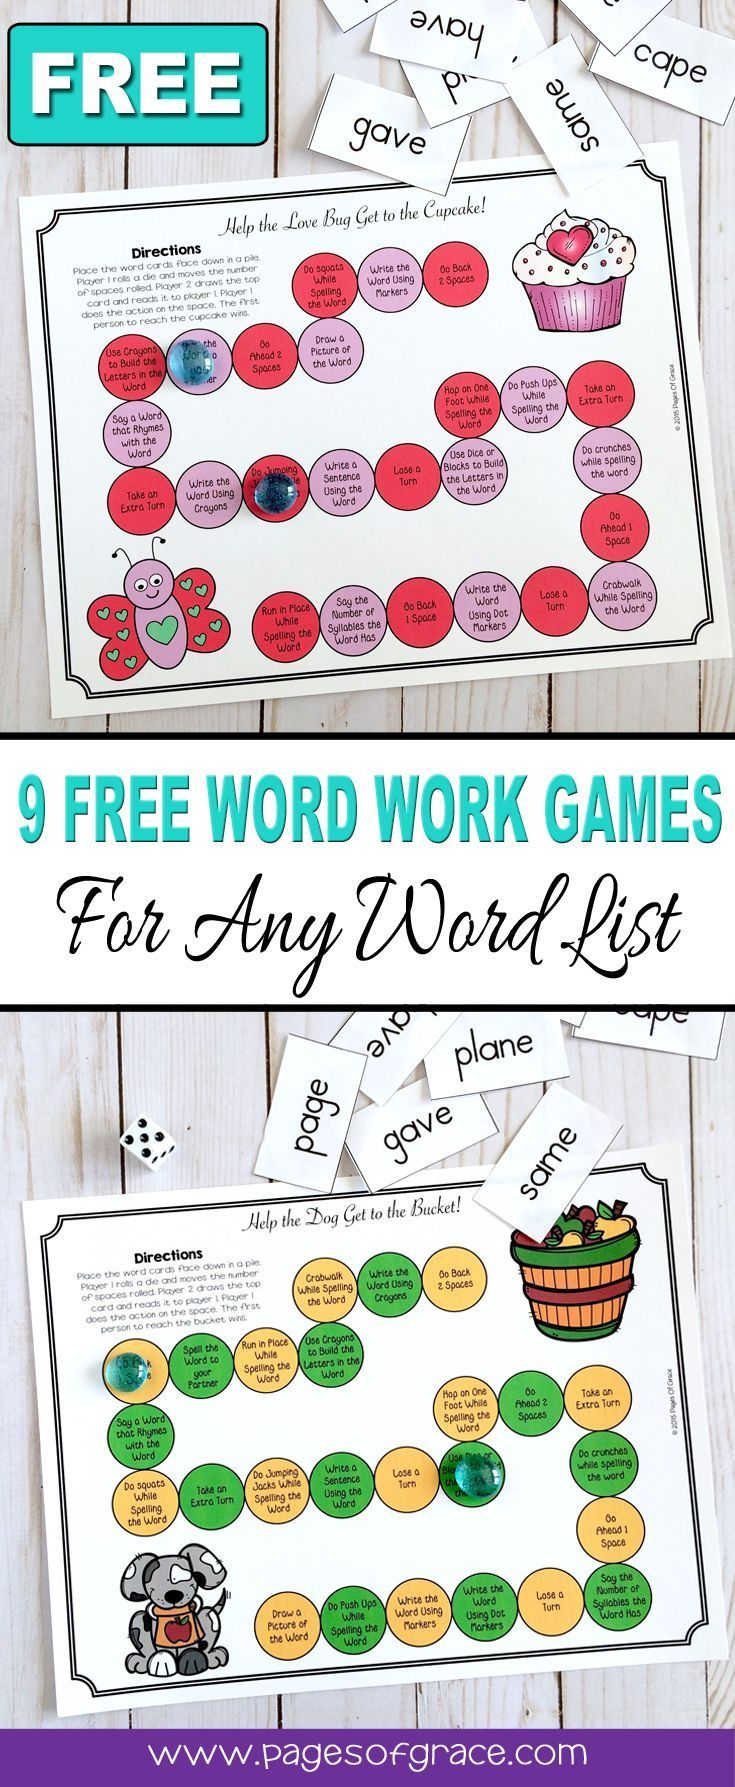 Best 20+ First grade games ideas on Pinterest | All math games ...